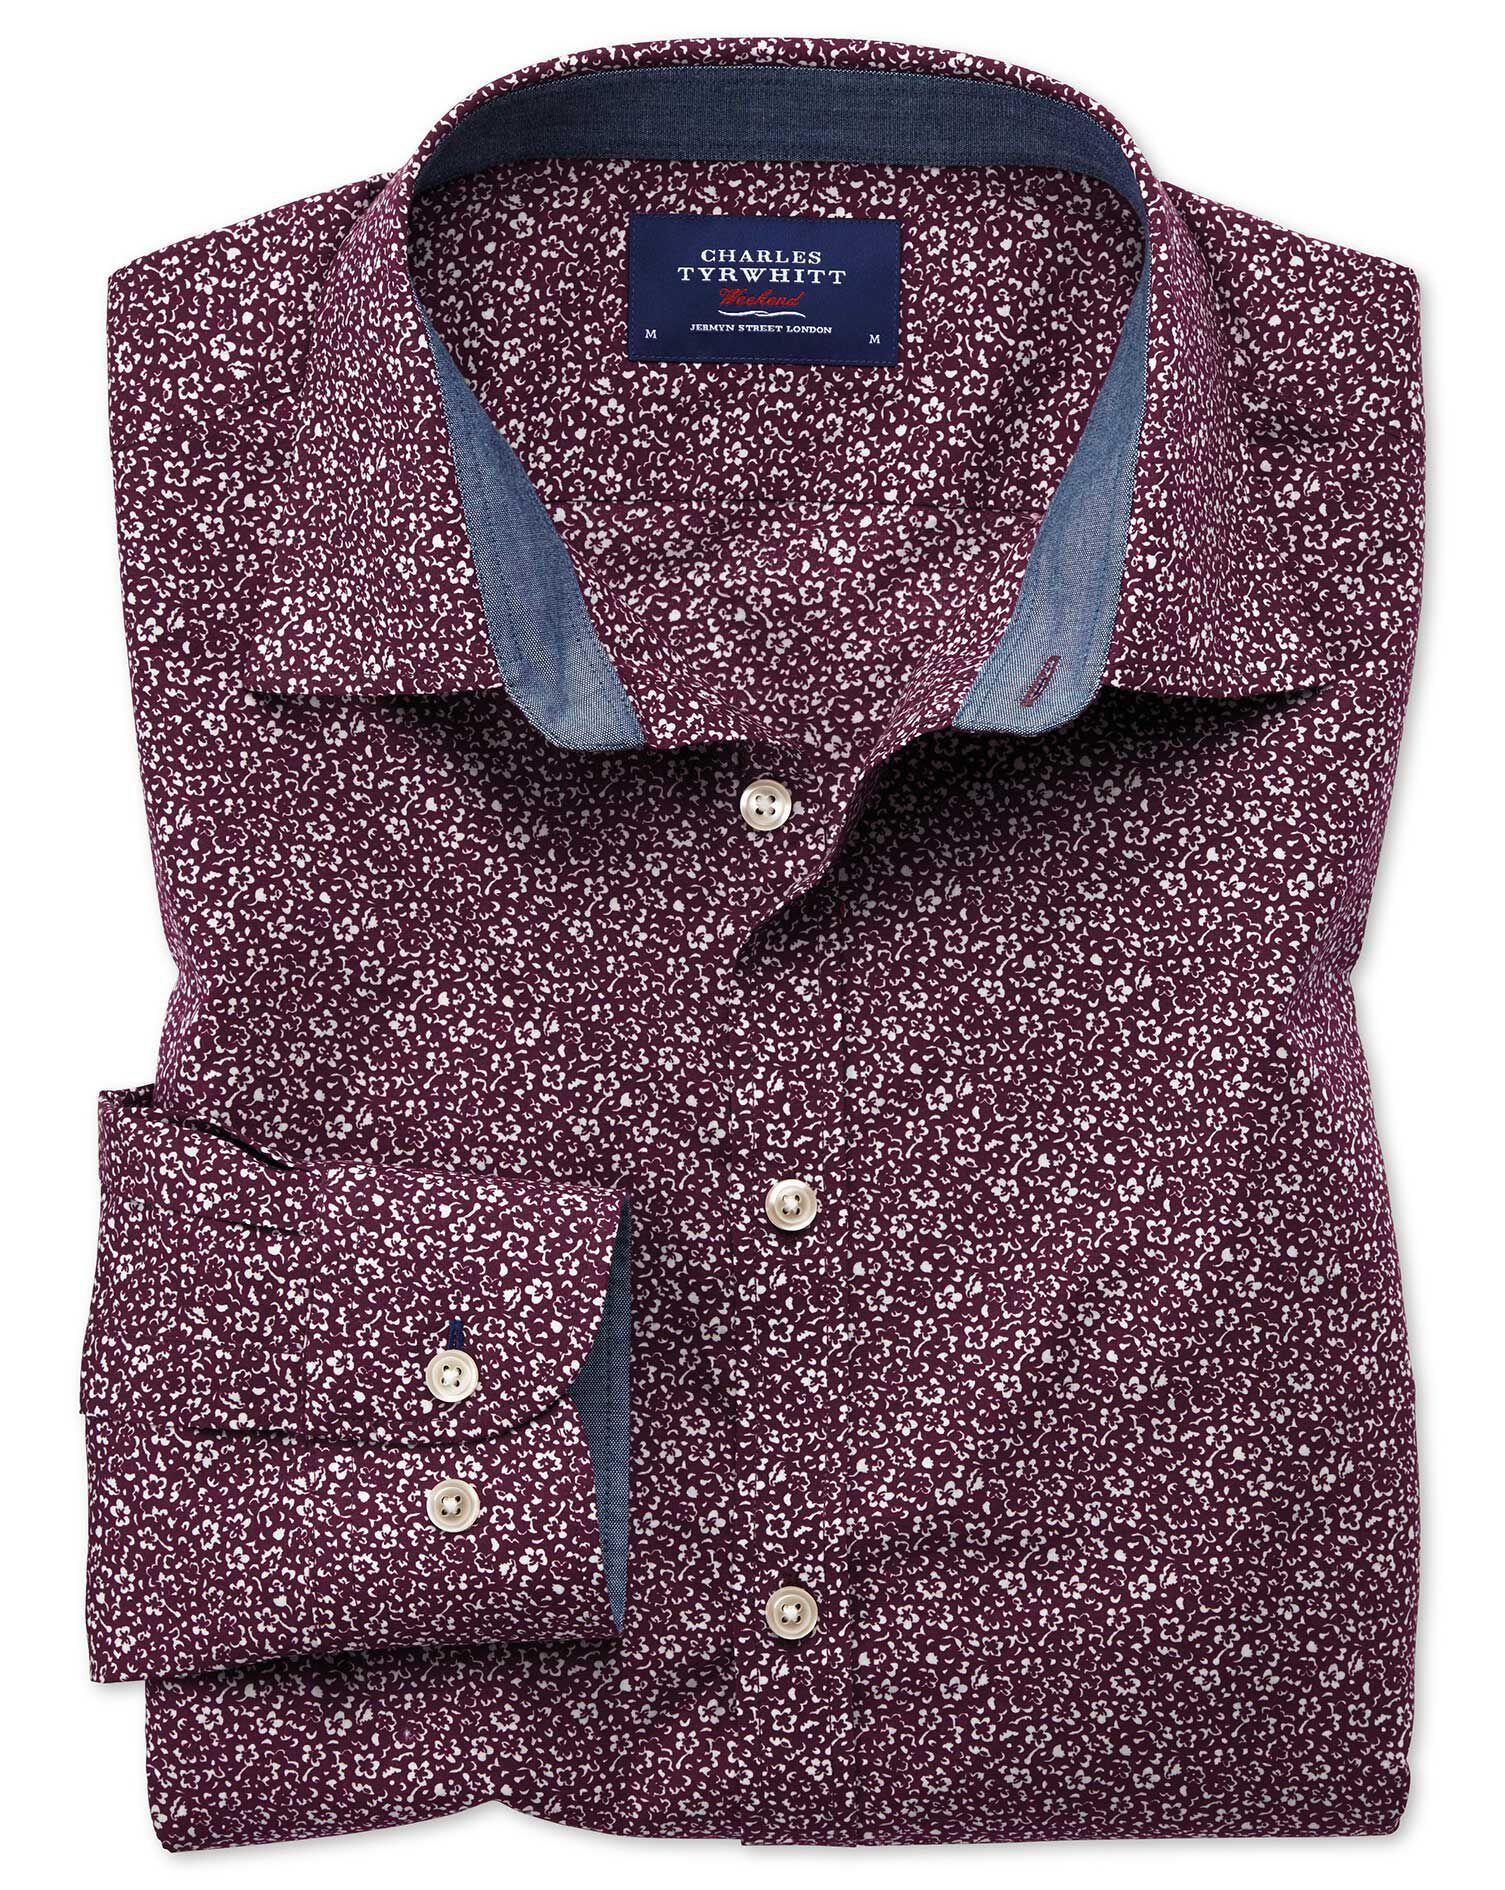 Extra Slim Fit Purple Floral Print Cotton Shirt Single Cuff Size Large by Charles Tyrwhitt